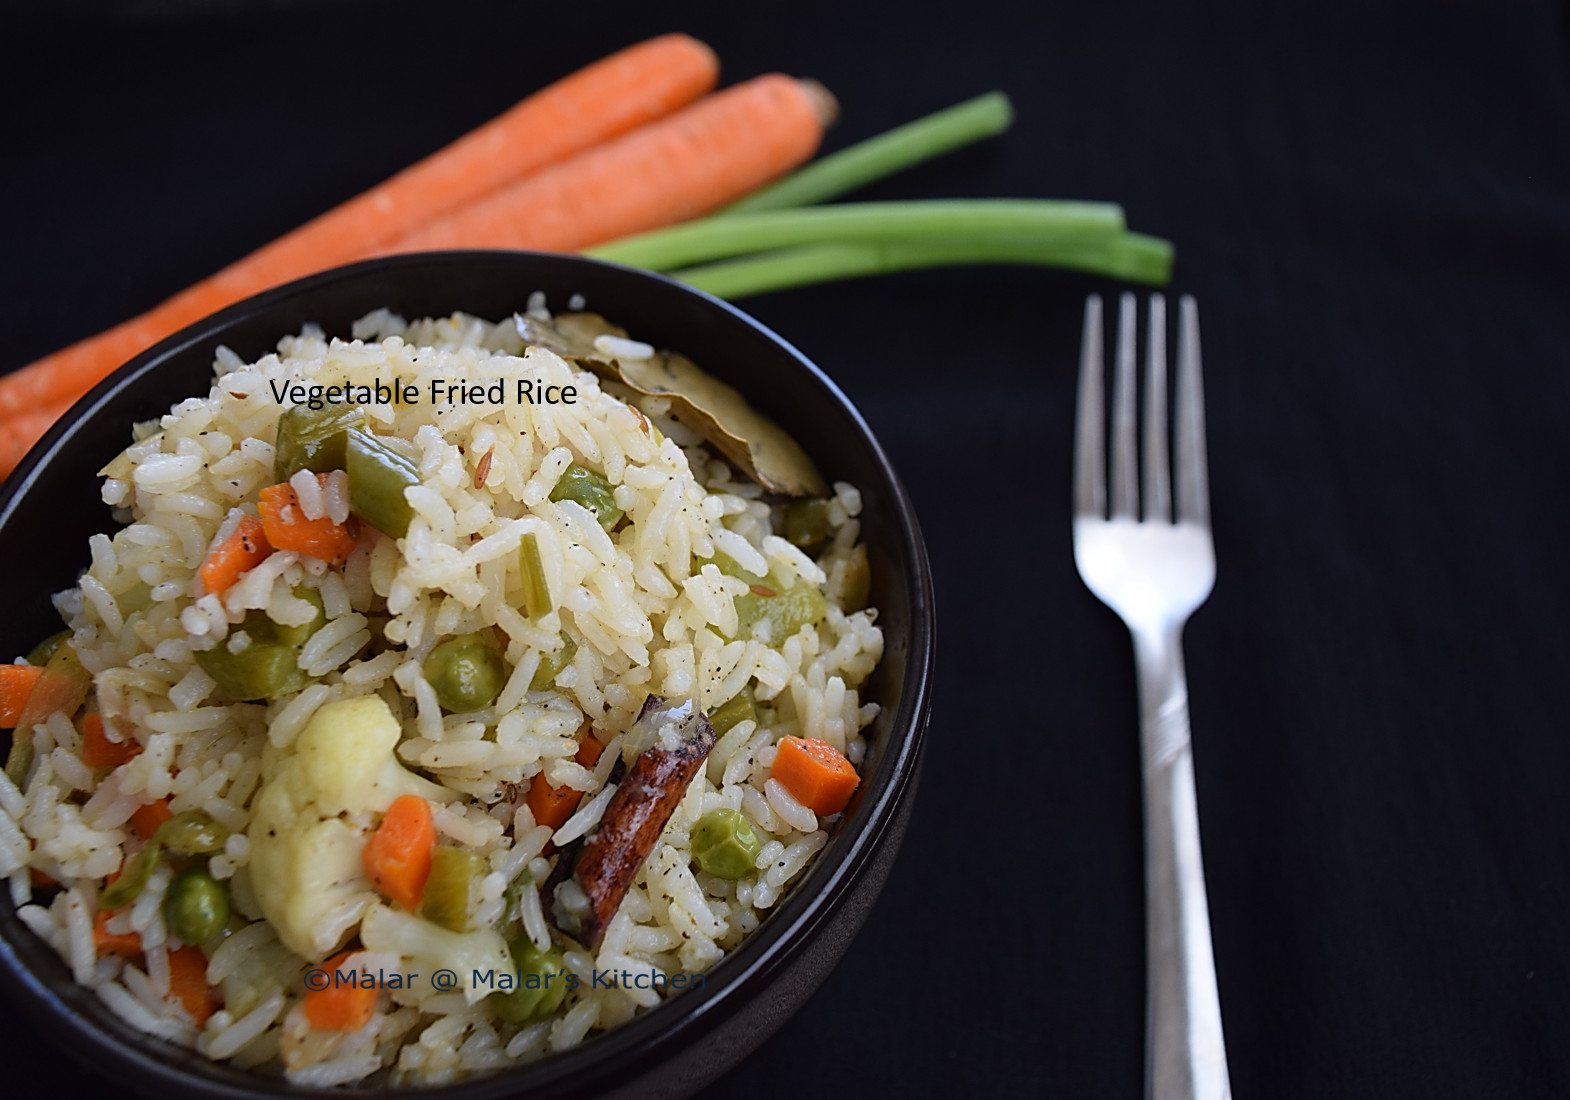 Fried Rice Without Soy Sauce  Ve able Fried Rice Indian Style without soy sauce